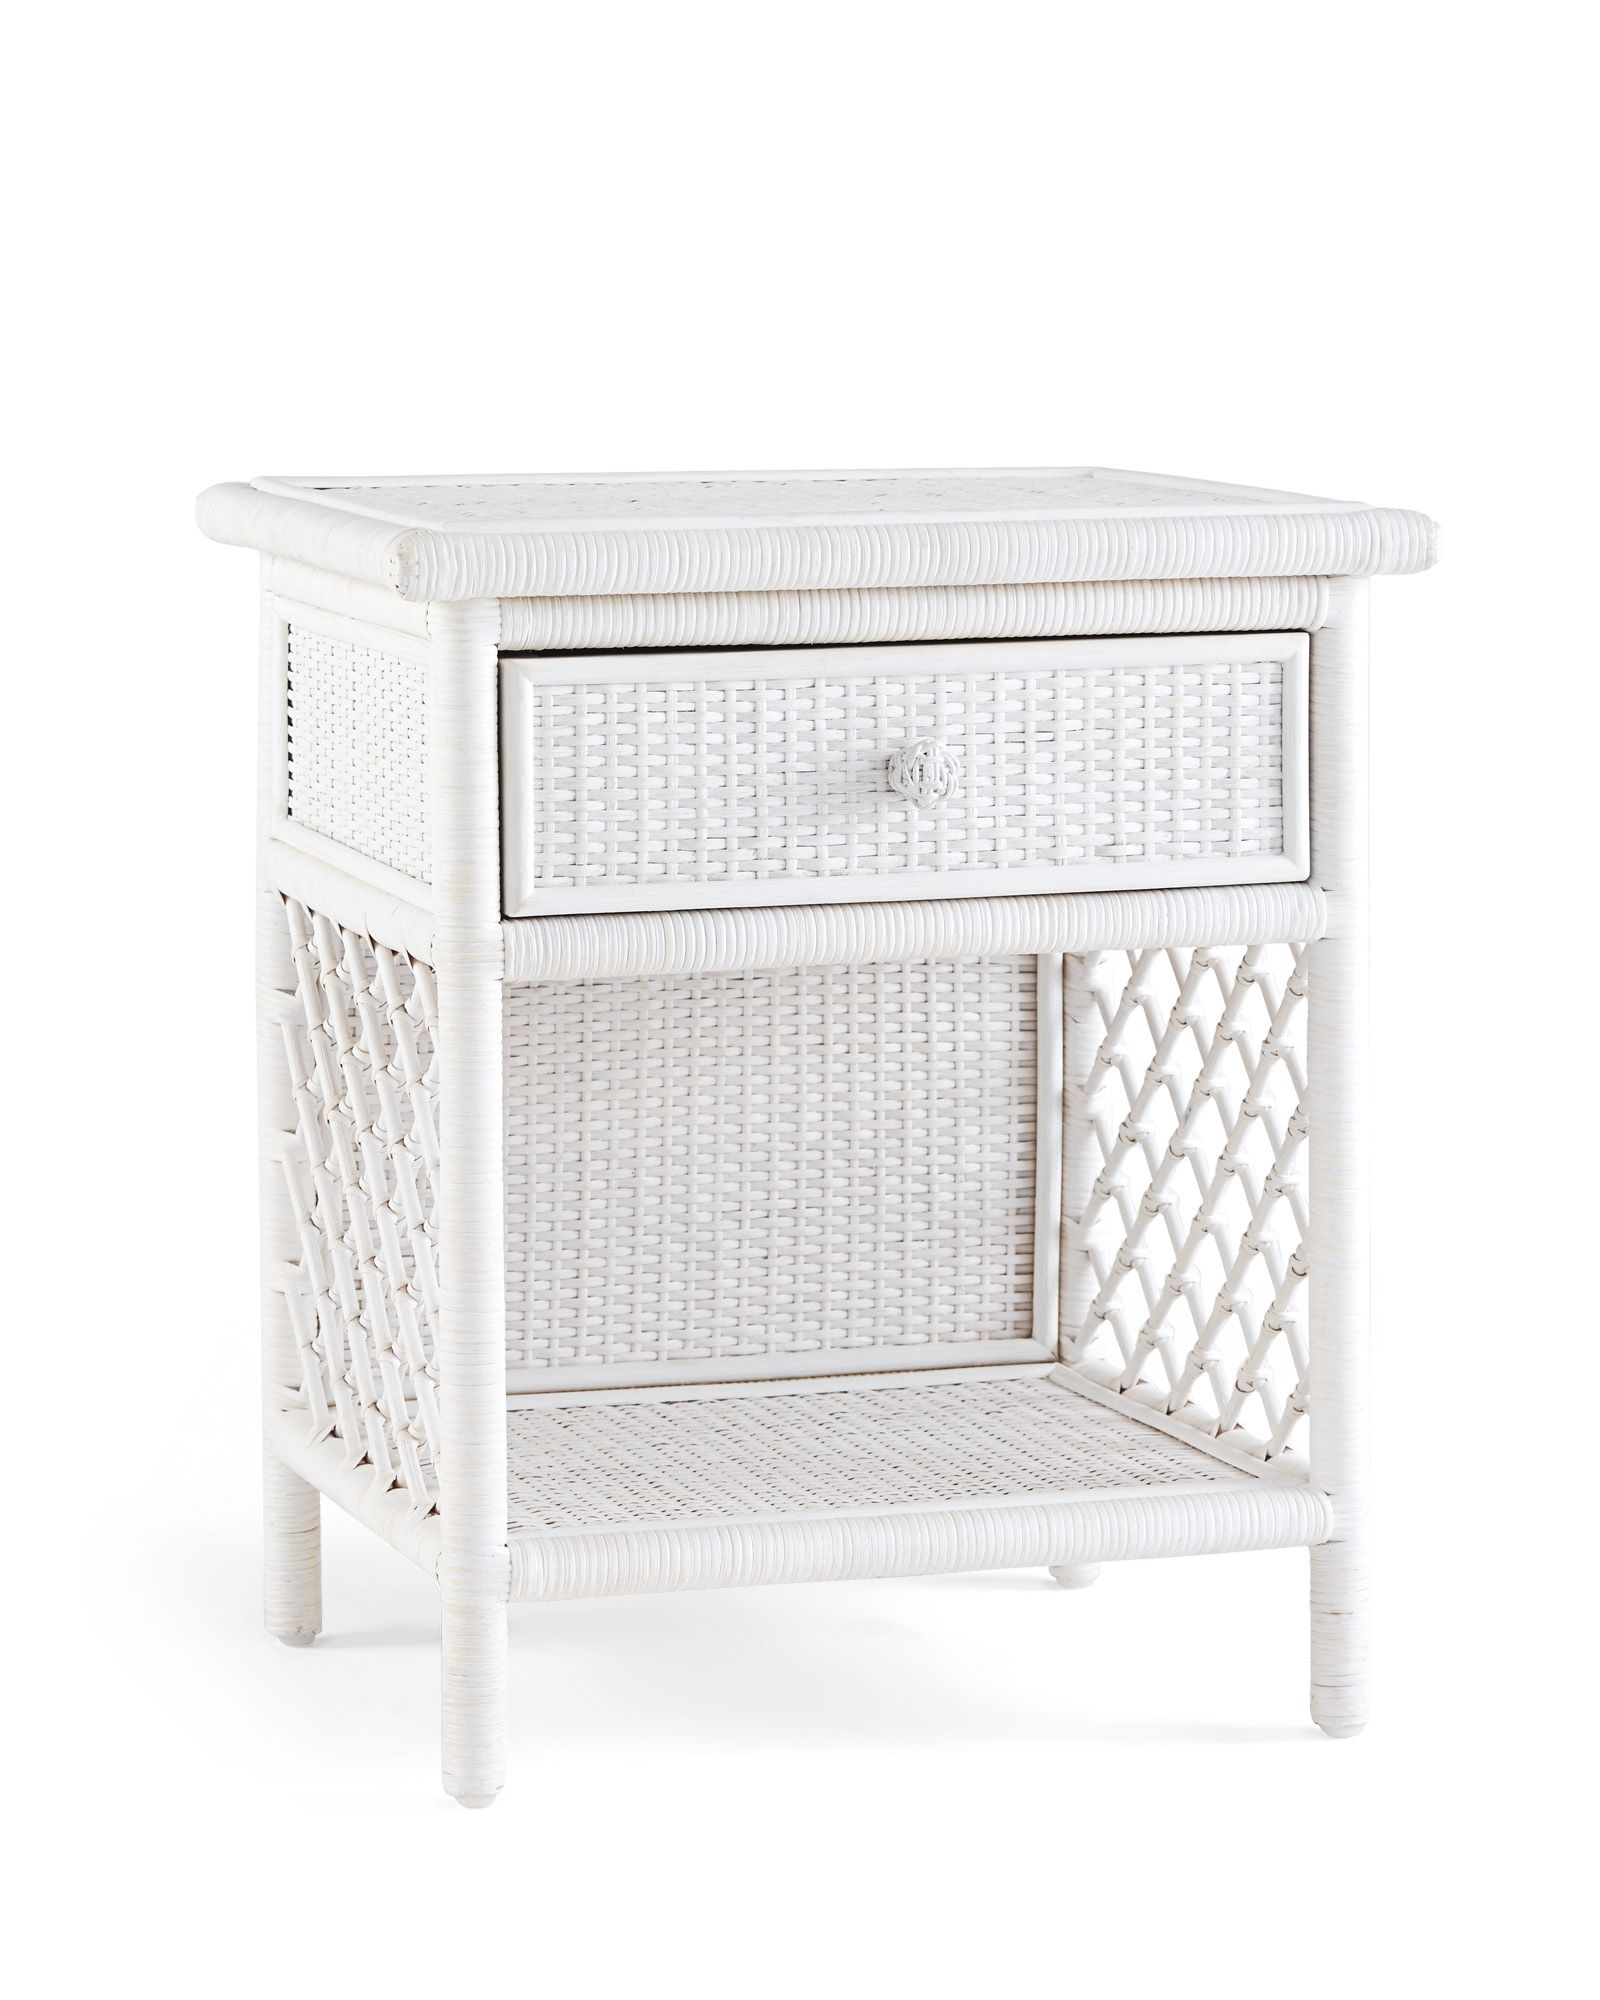 Natural Rattan Brings A Breezy Style To This Table It S A Great Way To Lighten Things Up While Keepi Living Room Side Table Side Coffee Table White Wash Table